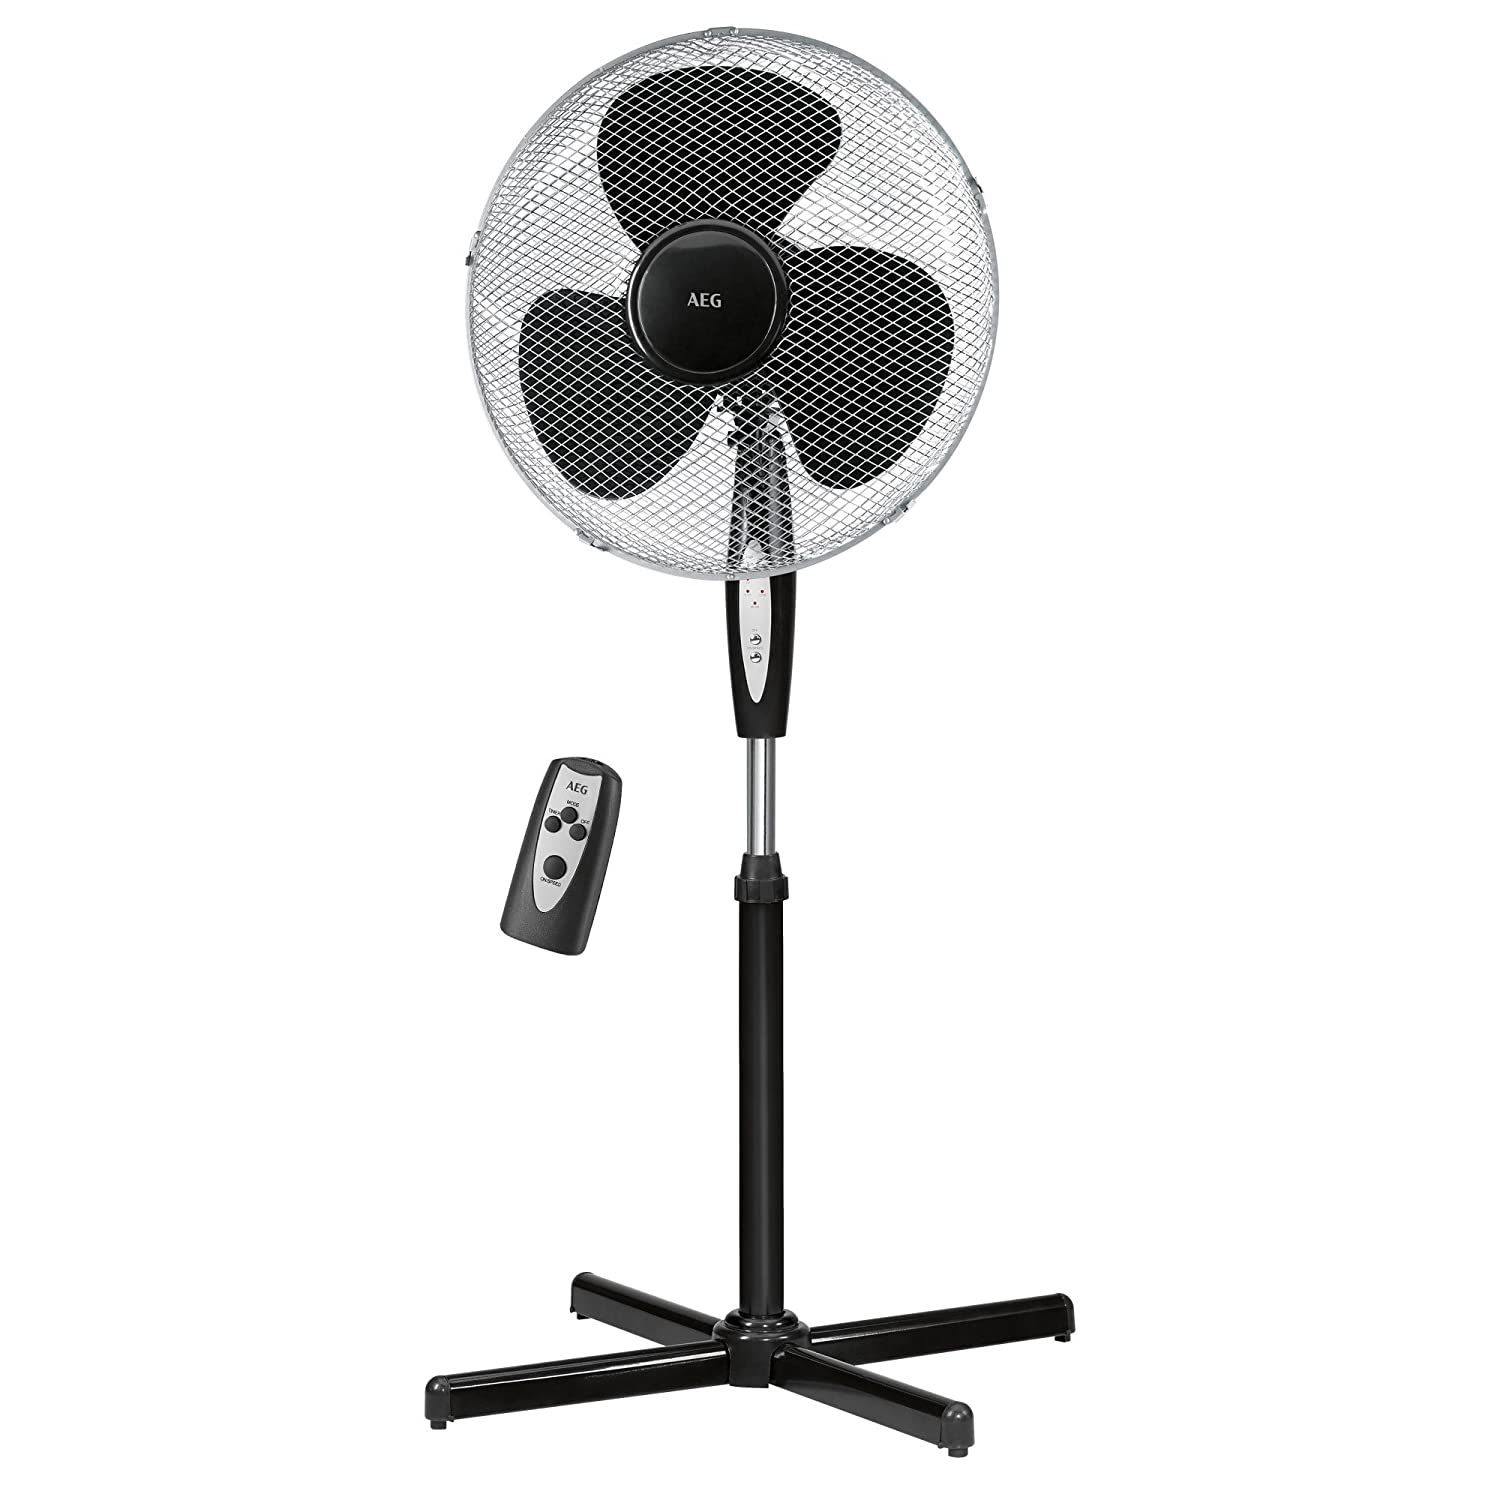 Aeg VL 5668 stand fan with remote control and timer VL 5668 S